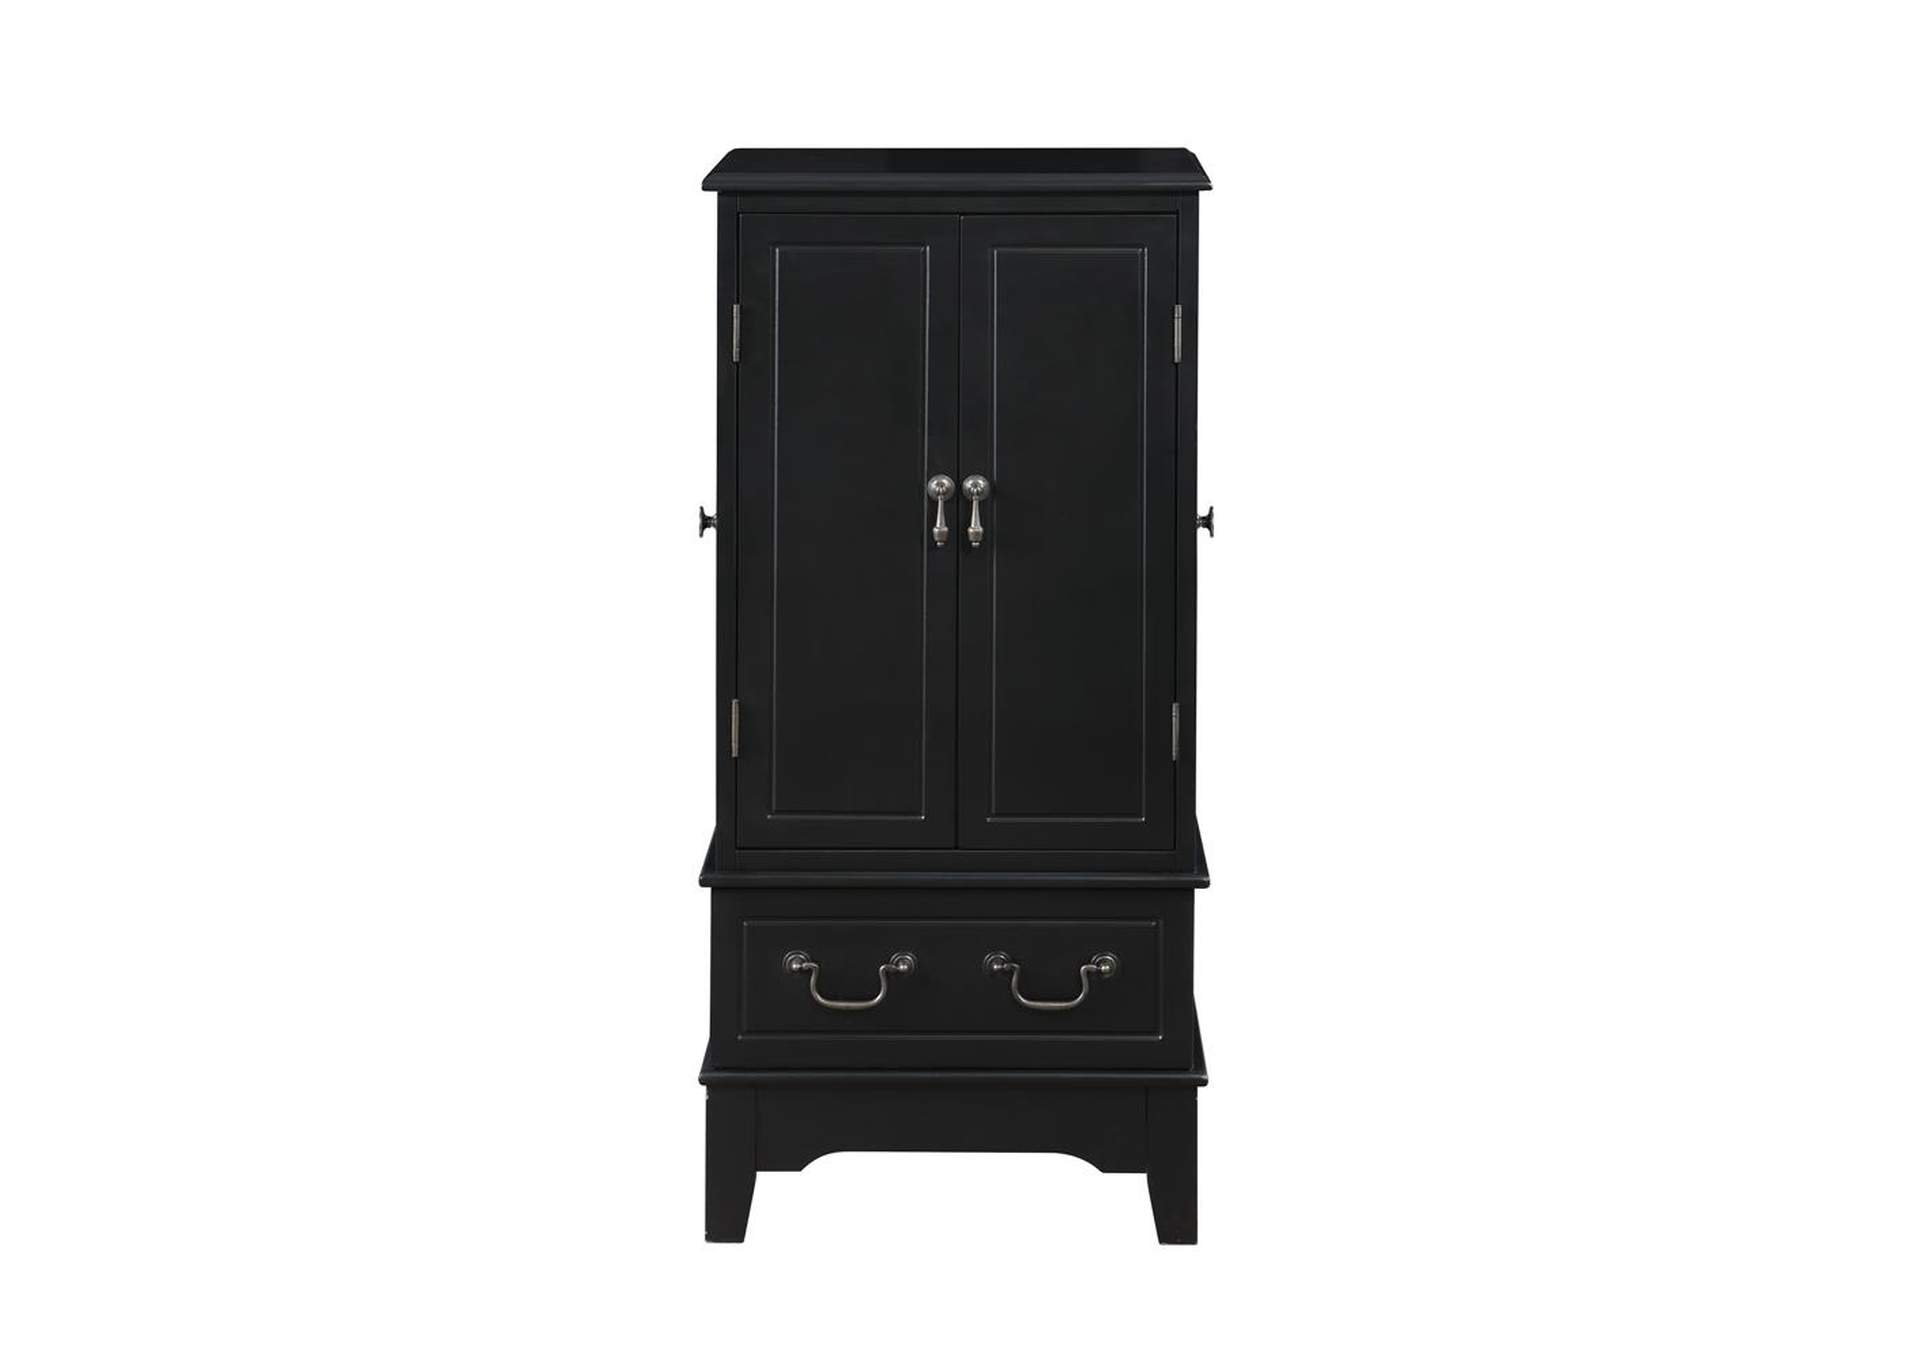 Eerie Black Transitional Black Jewelry Armoire,Coaster Furniture